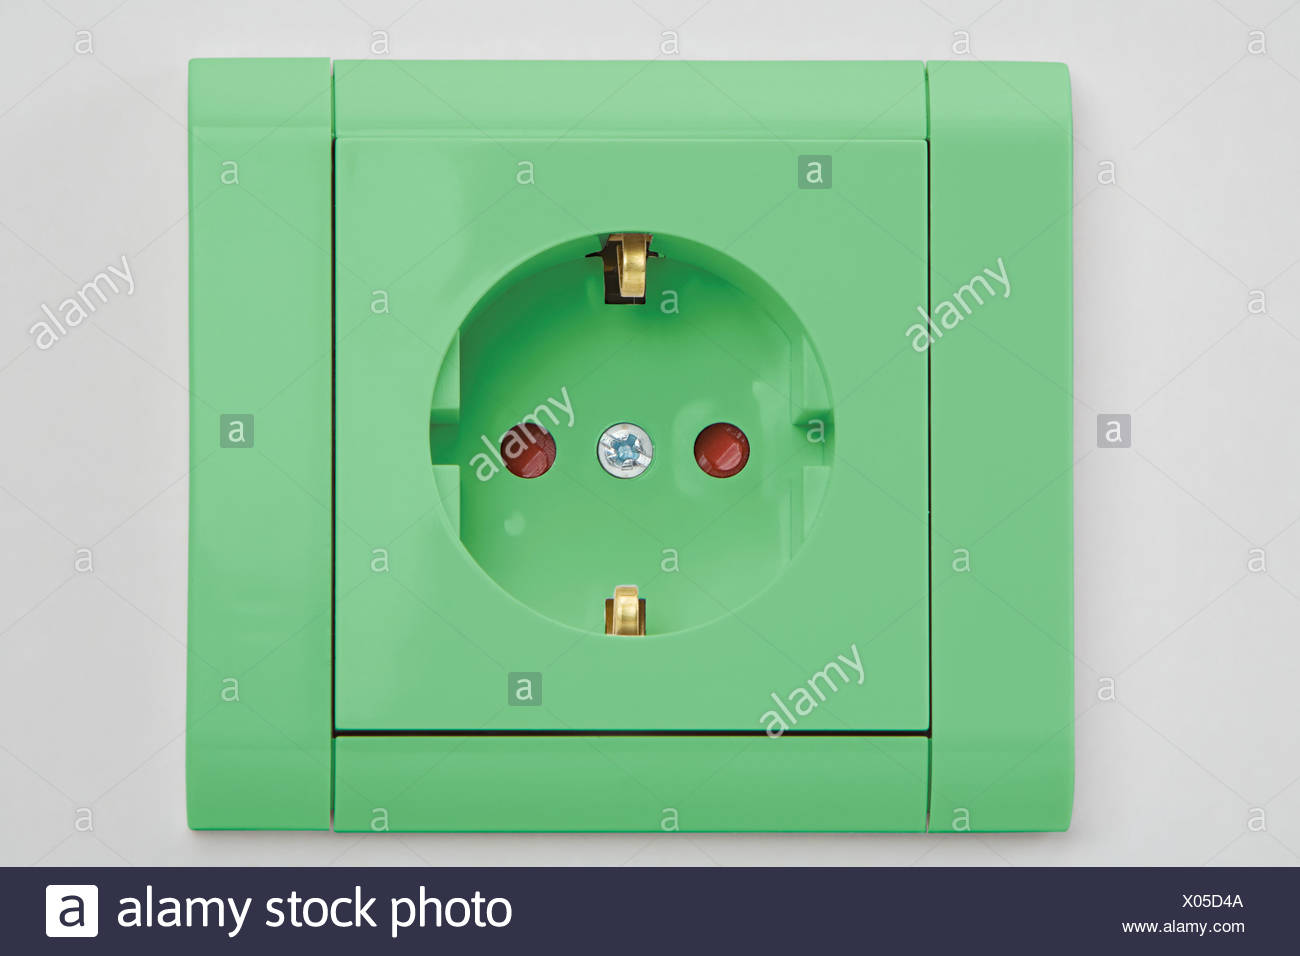 A green electrical socket Stock Photo